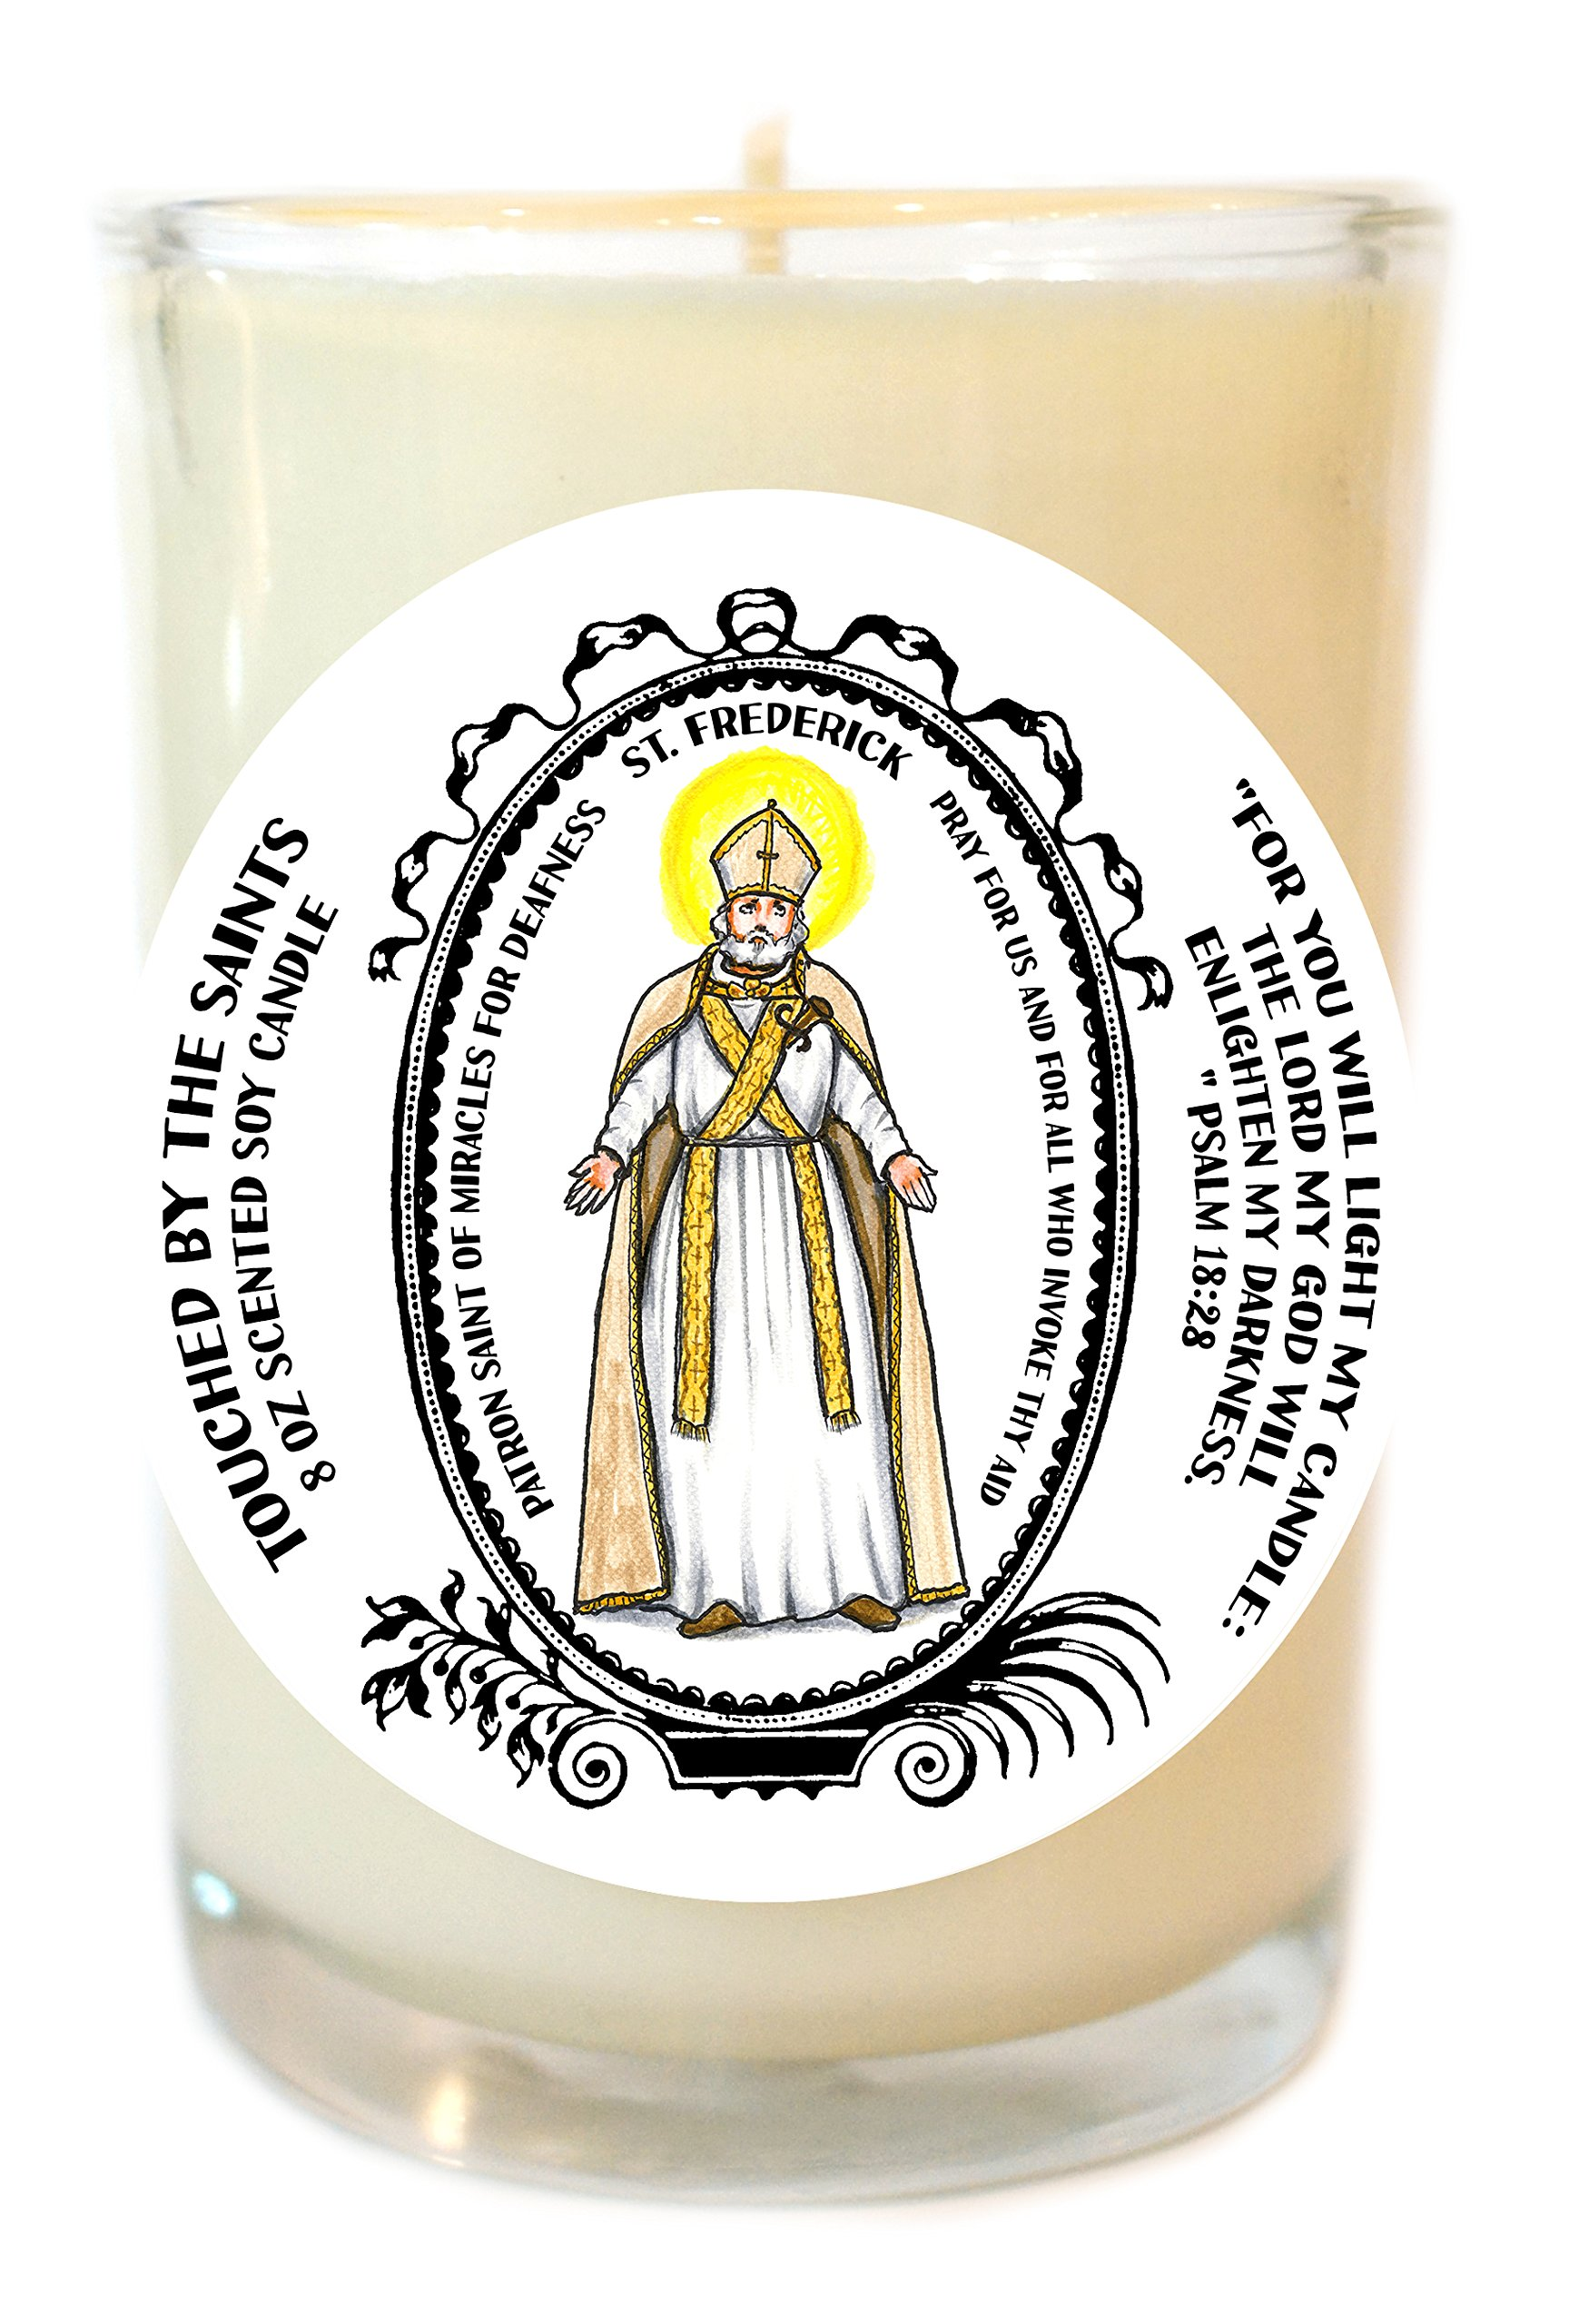 St Frederick of Miracles for Deafness 8 Oz Scented Soy Glass Prayer Candle